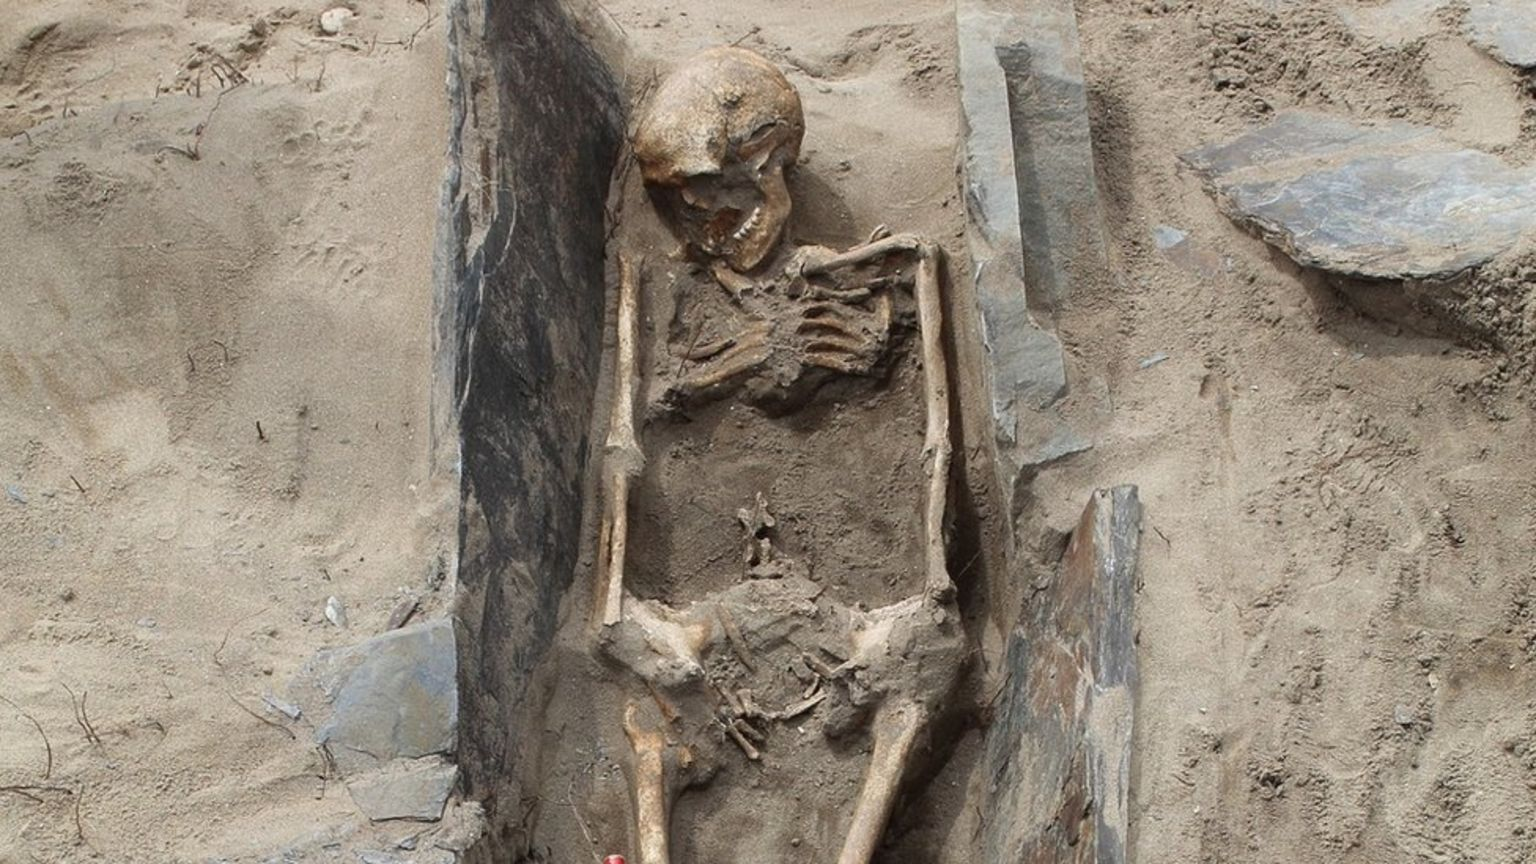 Early-6th century burials found in Pembrokeshire